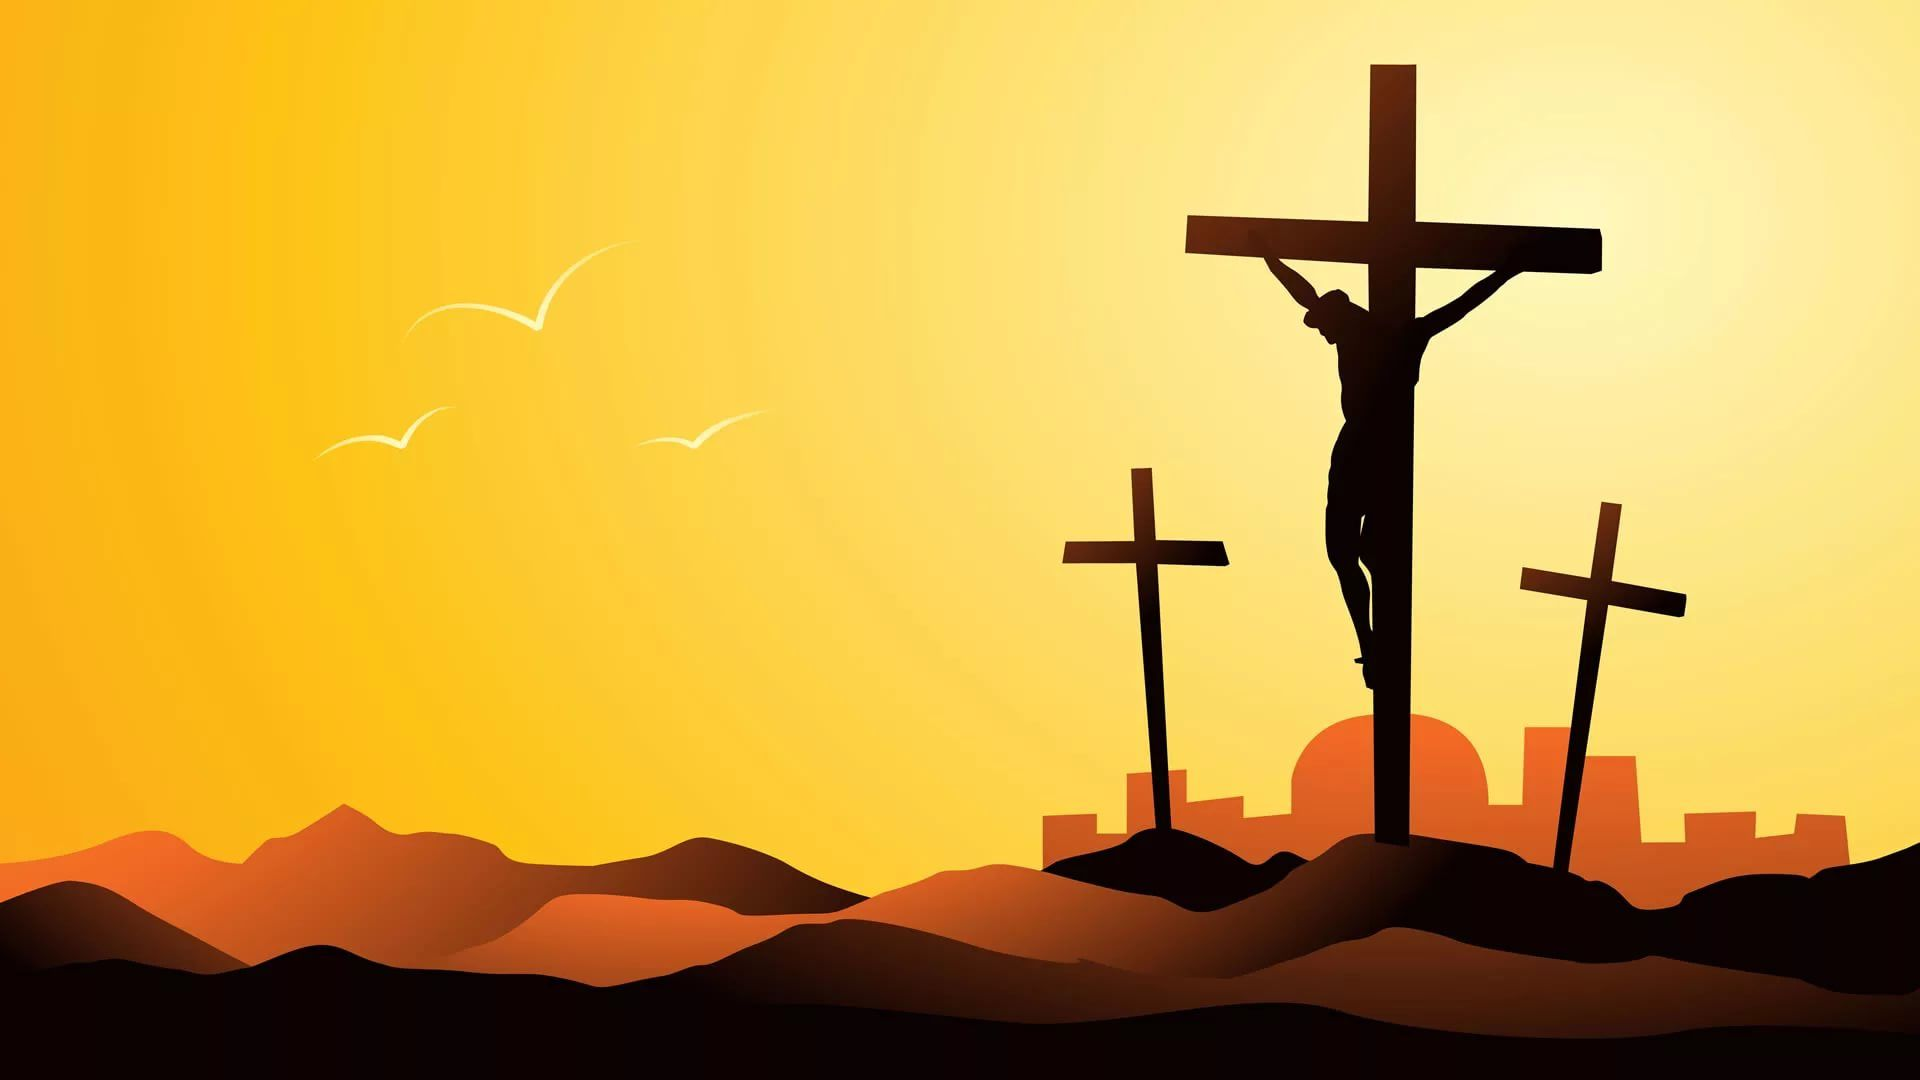 Jesus Cross Wallpapers 21 Images Wallpaperboat